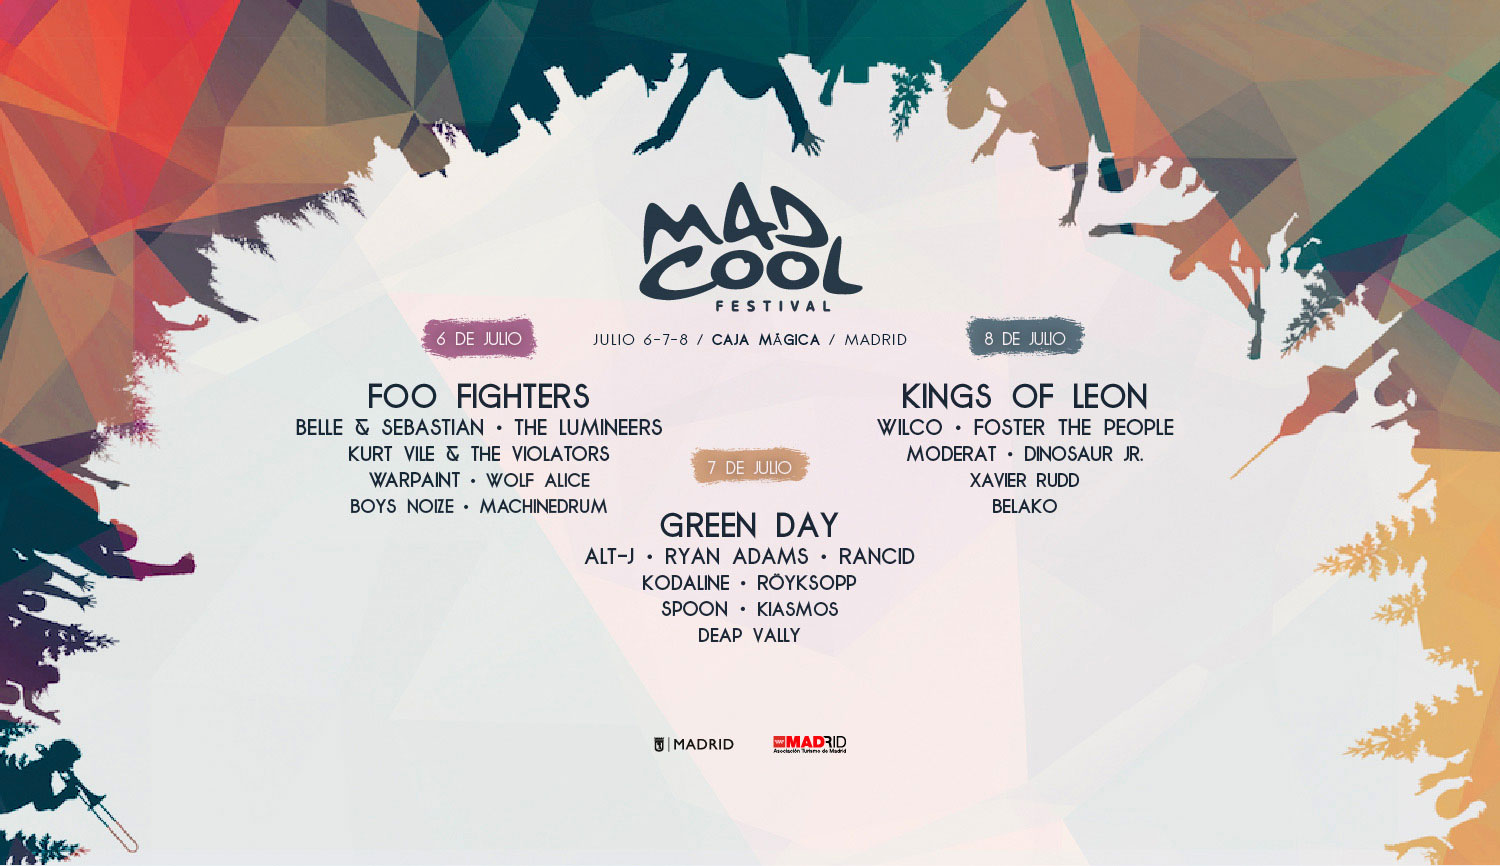 mad cool festival Foo Fighters, Wilco, Ryan Adams, Spoon, to play Spains Mad Cool Festival